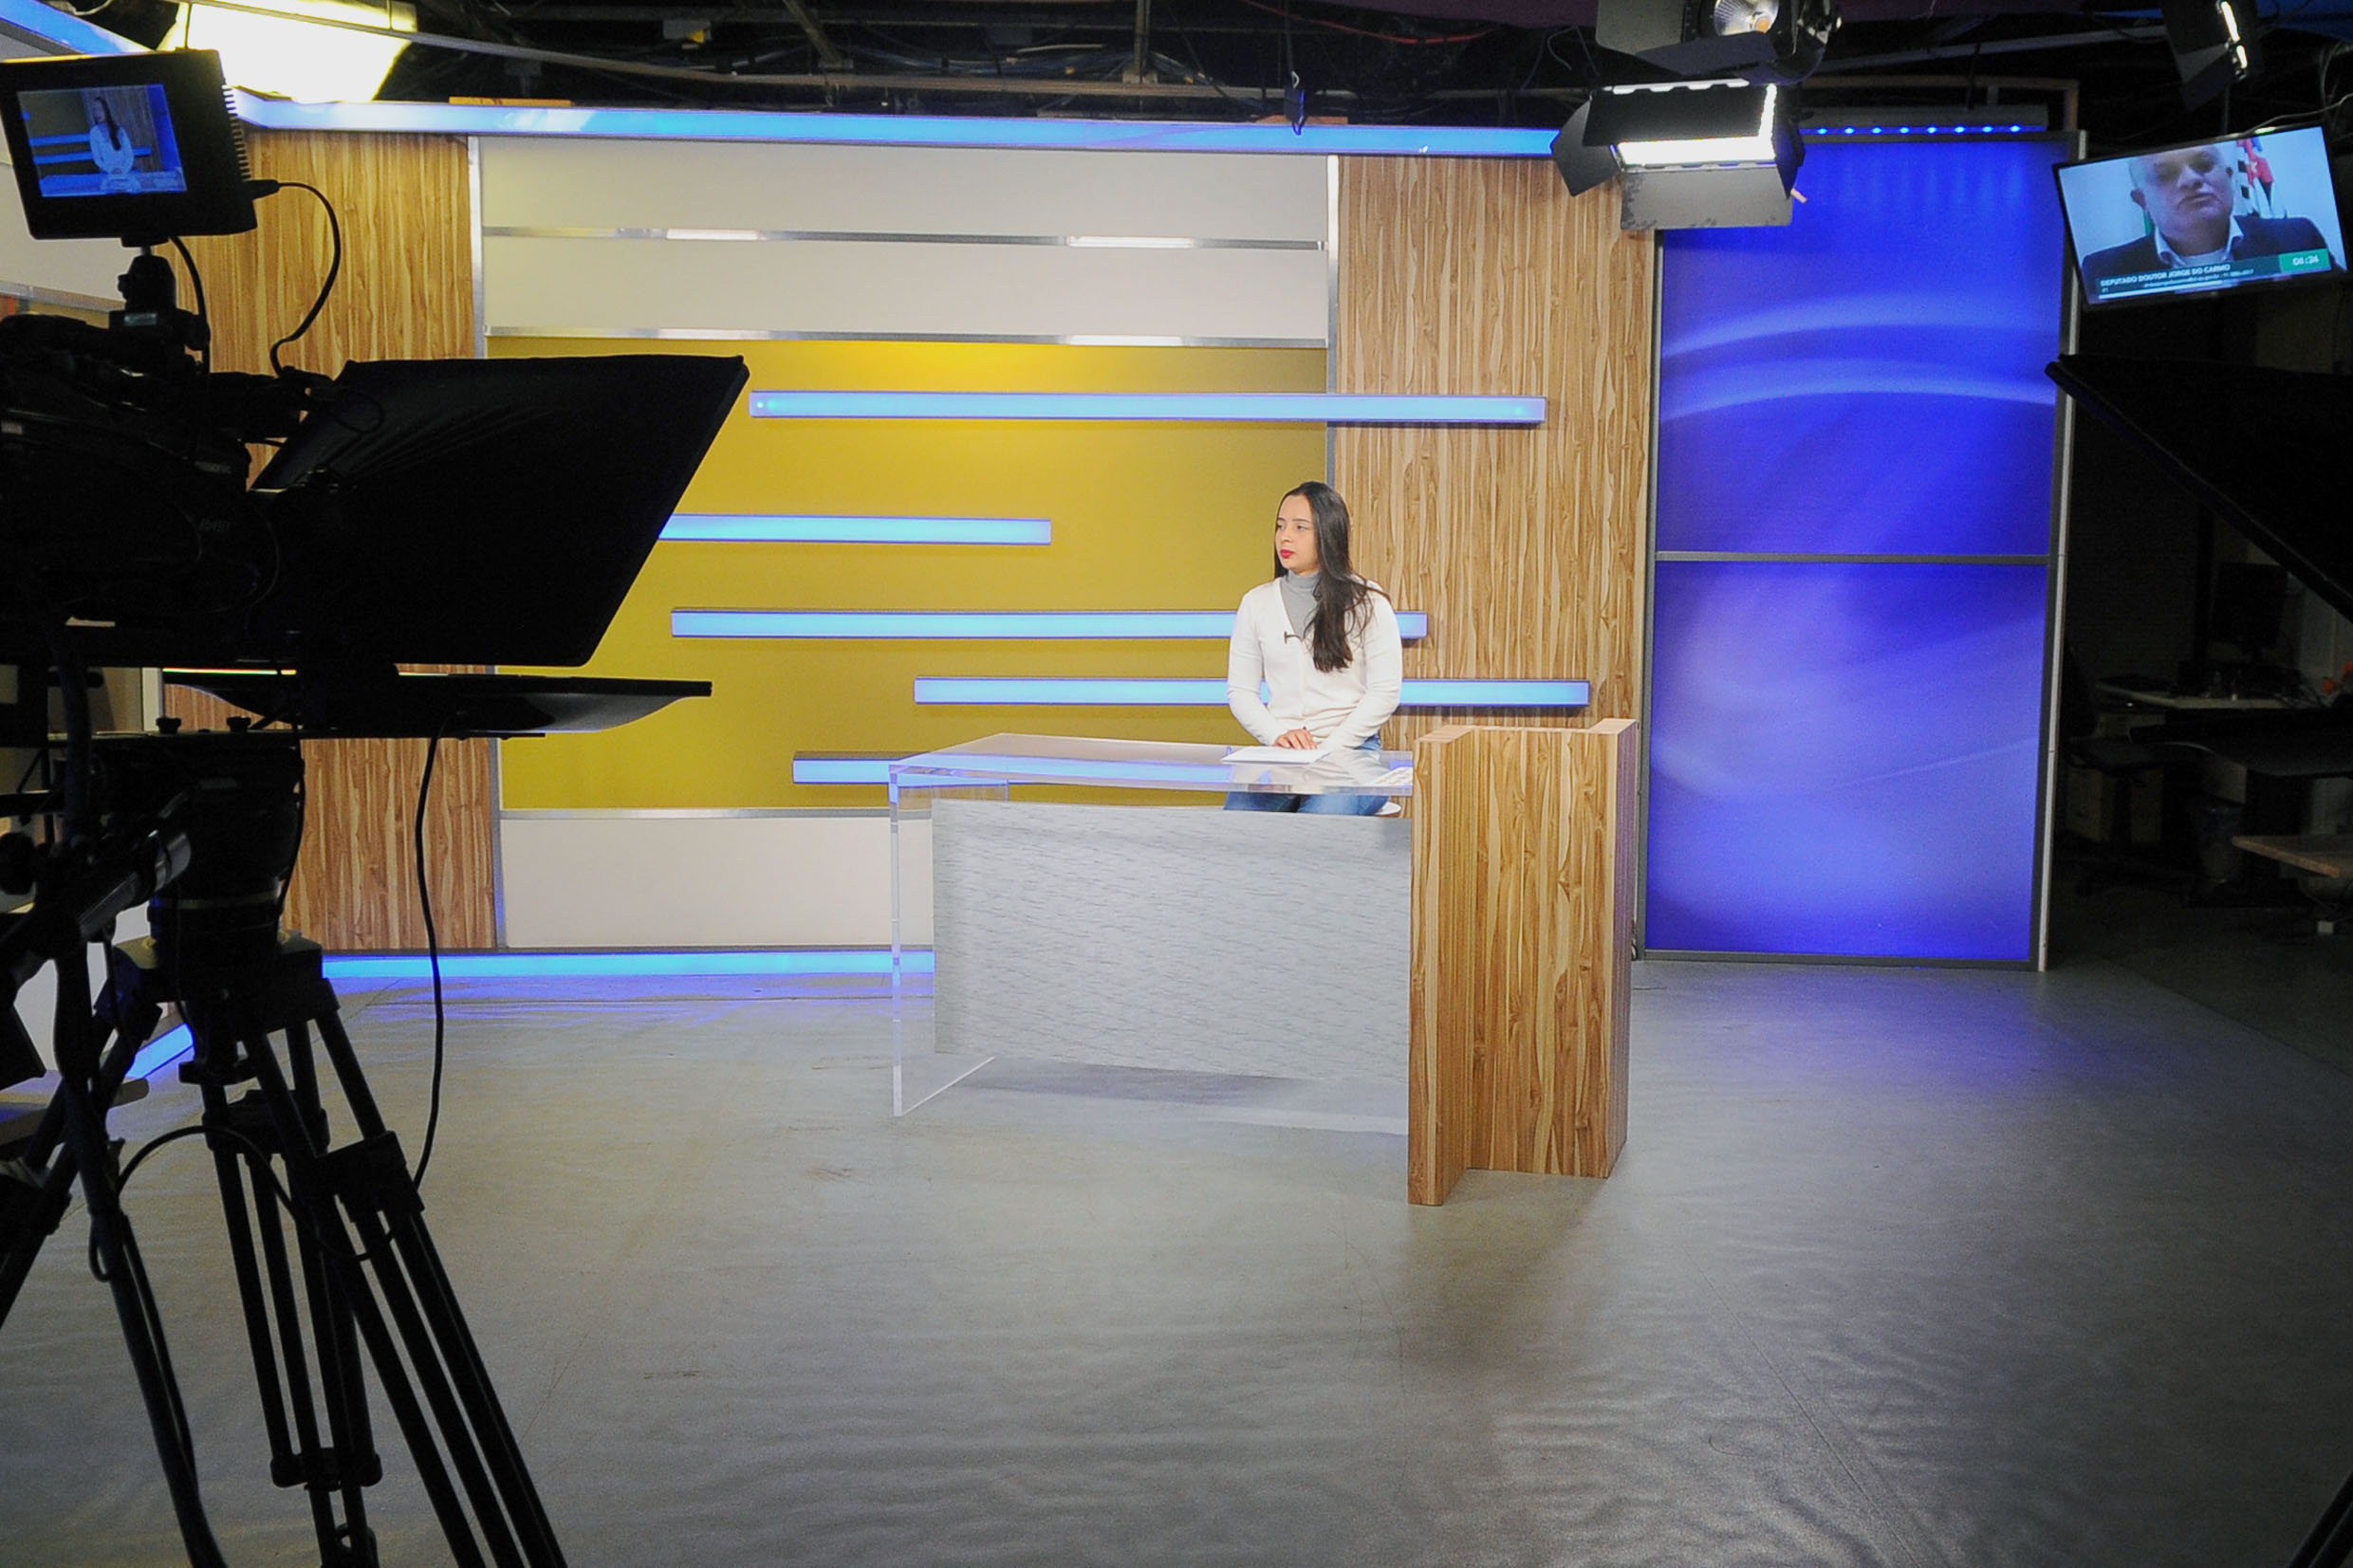 Tribuna Virtual <a style='float:right' href='https://www3.al.sp.gov.br/repositorio/noticia/N-05-2020/fg249204.jpg' target=_blank><img src='/_img/material-file-download-white.png' width='14px' alt='Clique para baixar a imagem'></a>